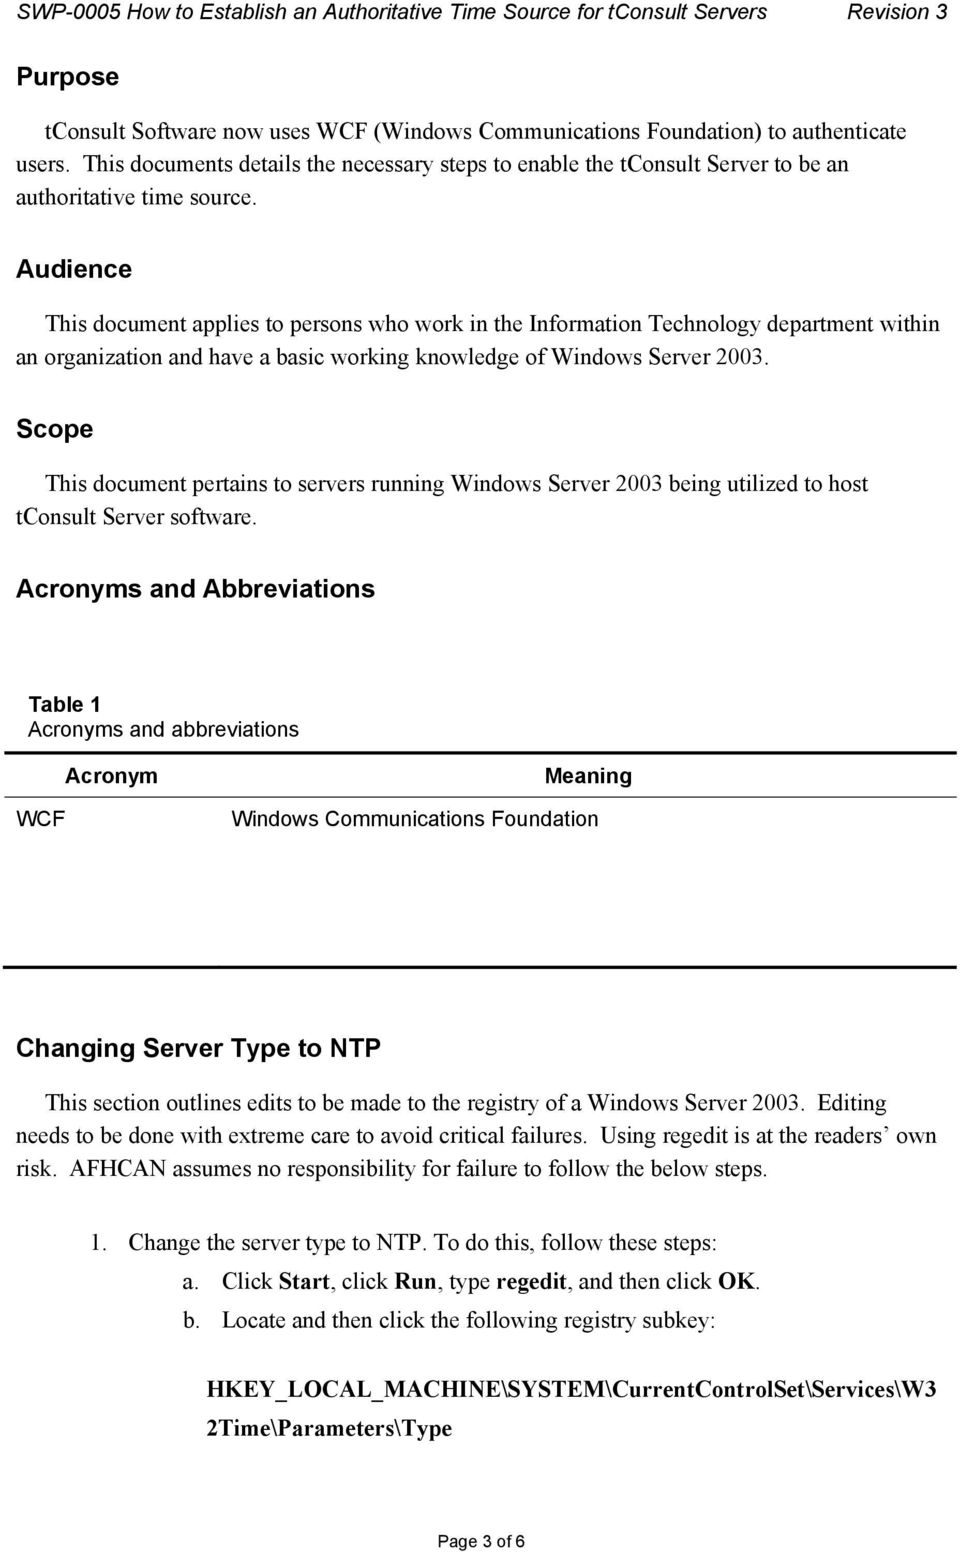 Audience This document applies to persons who work in the Information Technology department within an organization and have a basic working knowledge of Windows Server 2003.